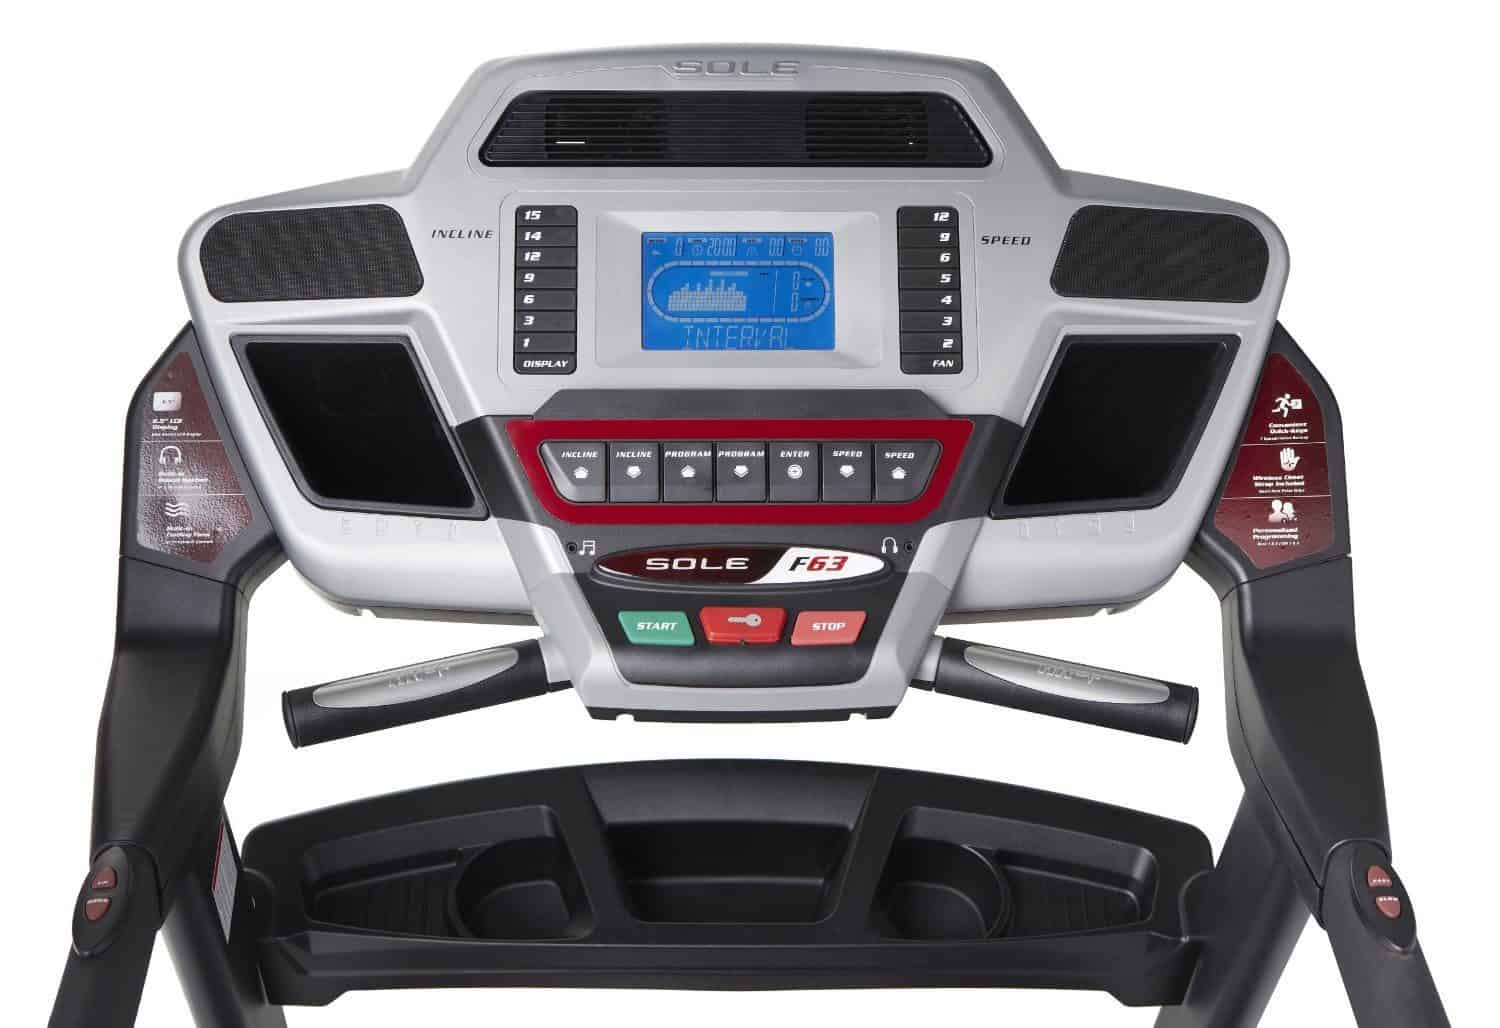 Sole Fitness F63 Folding Treadmill  Review